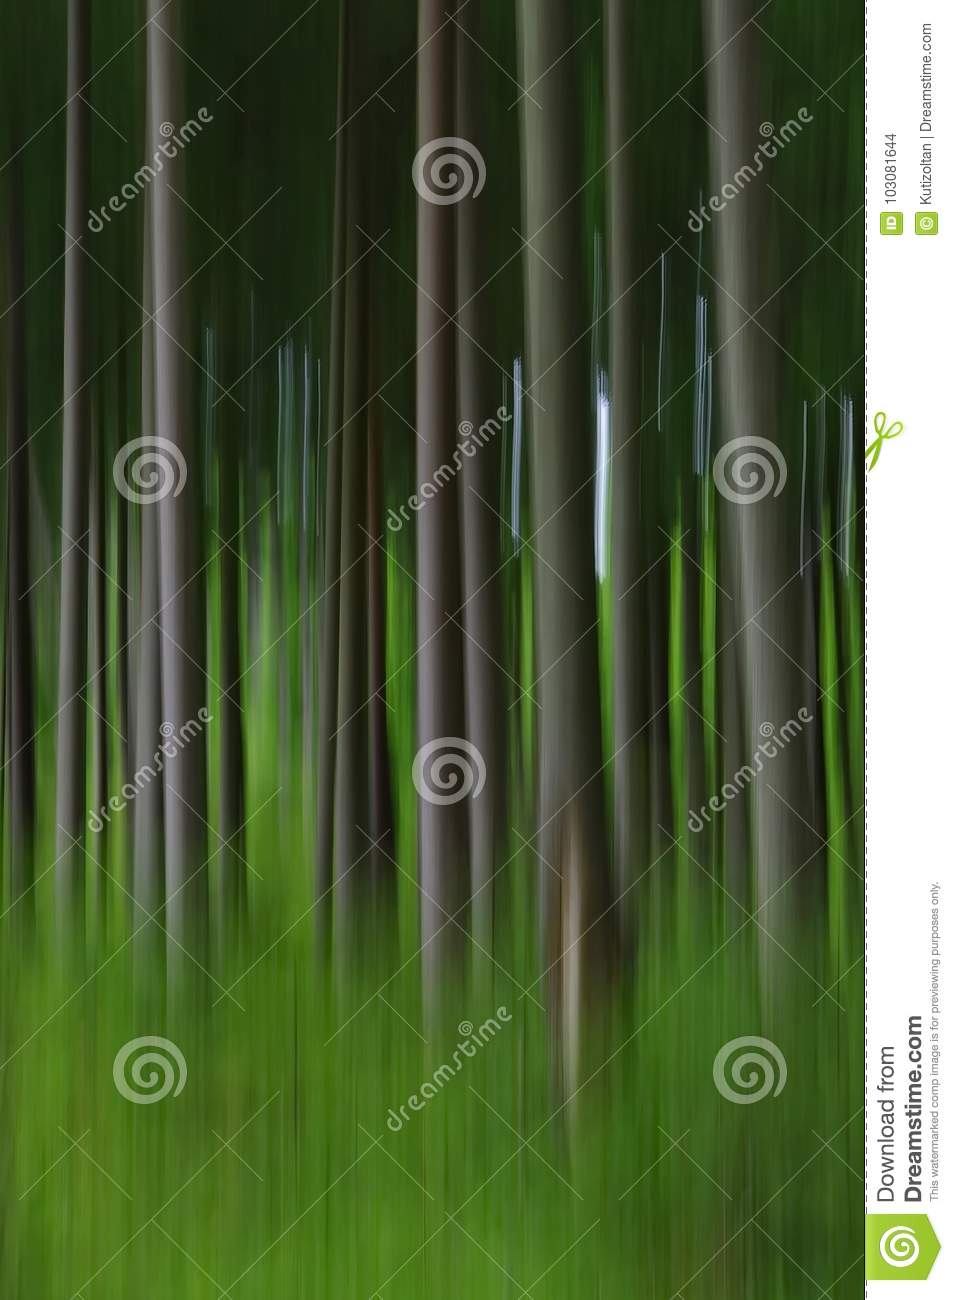 Abstract blurry pine tree forest